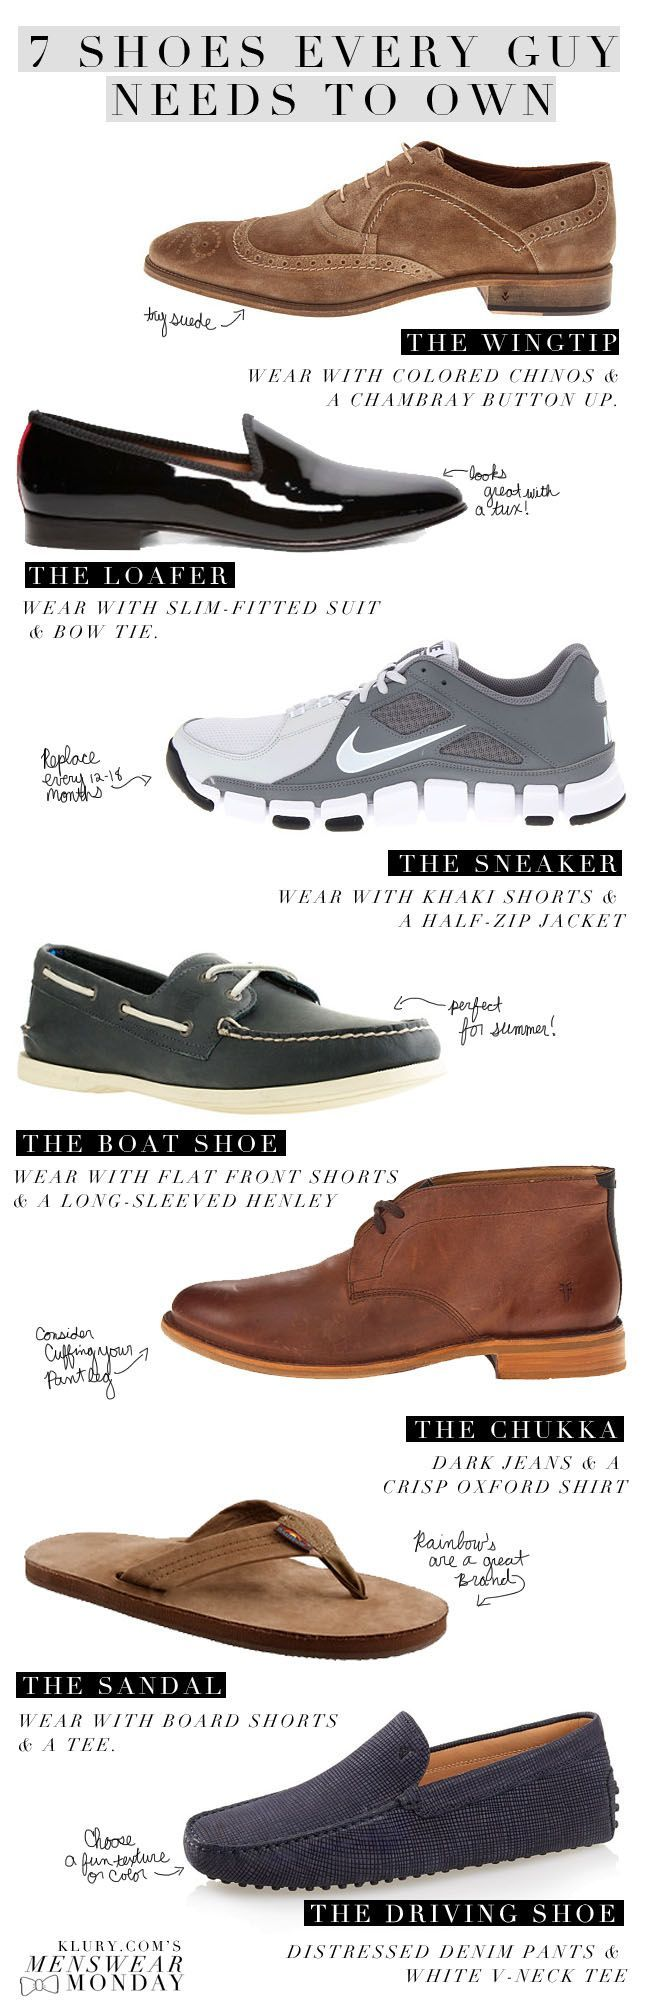 Shoes for every Gentleman #menstyle #shoes #infographic #menswear